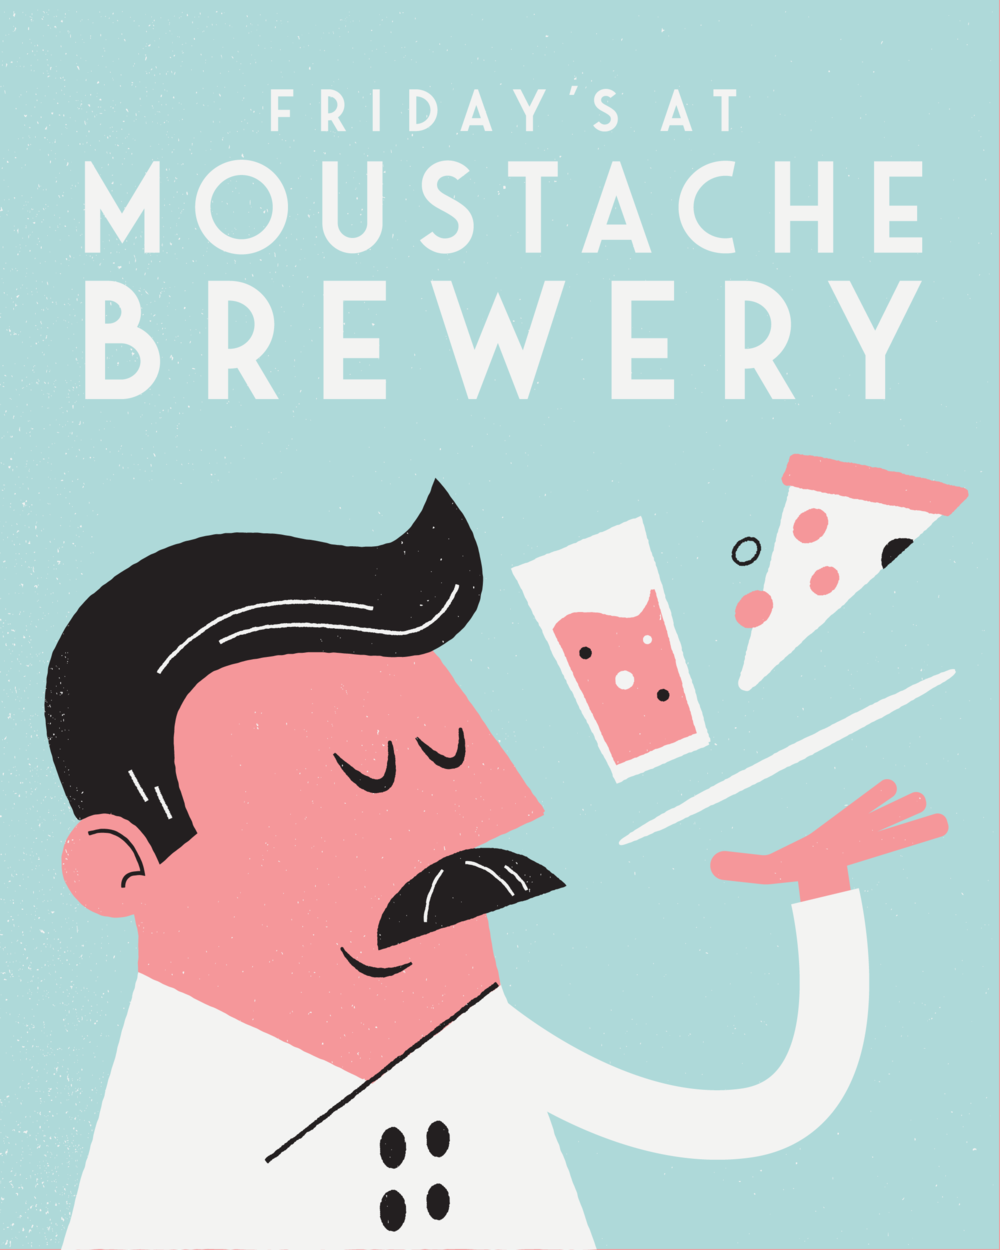 Pizza_Rita_Moustache_Brewery_Frame_01.png